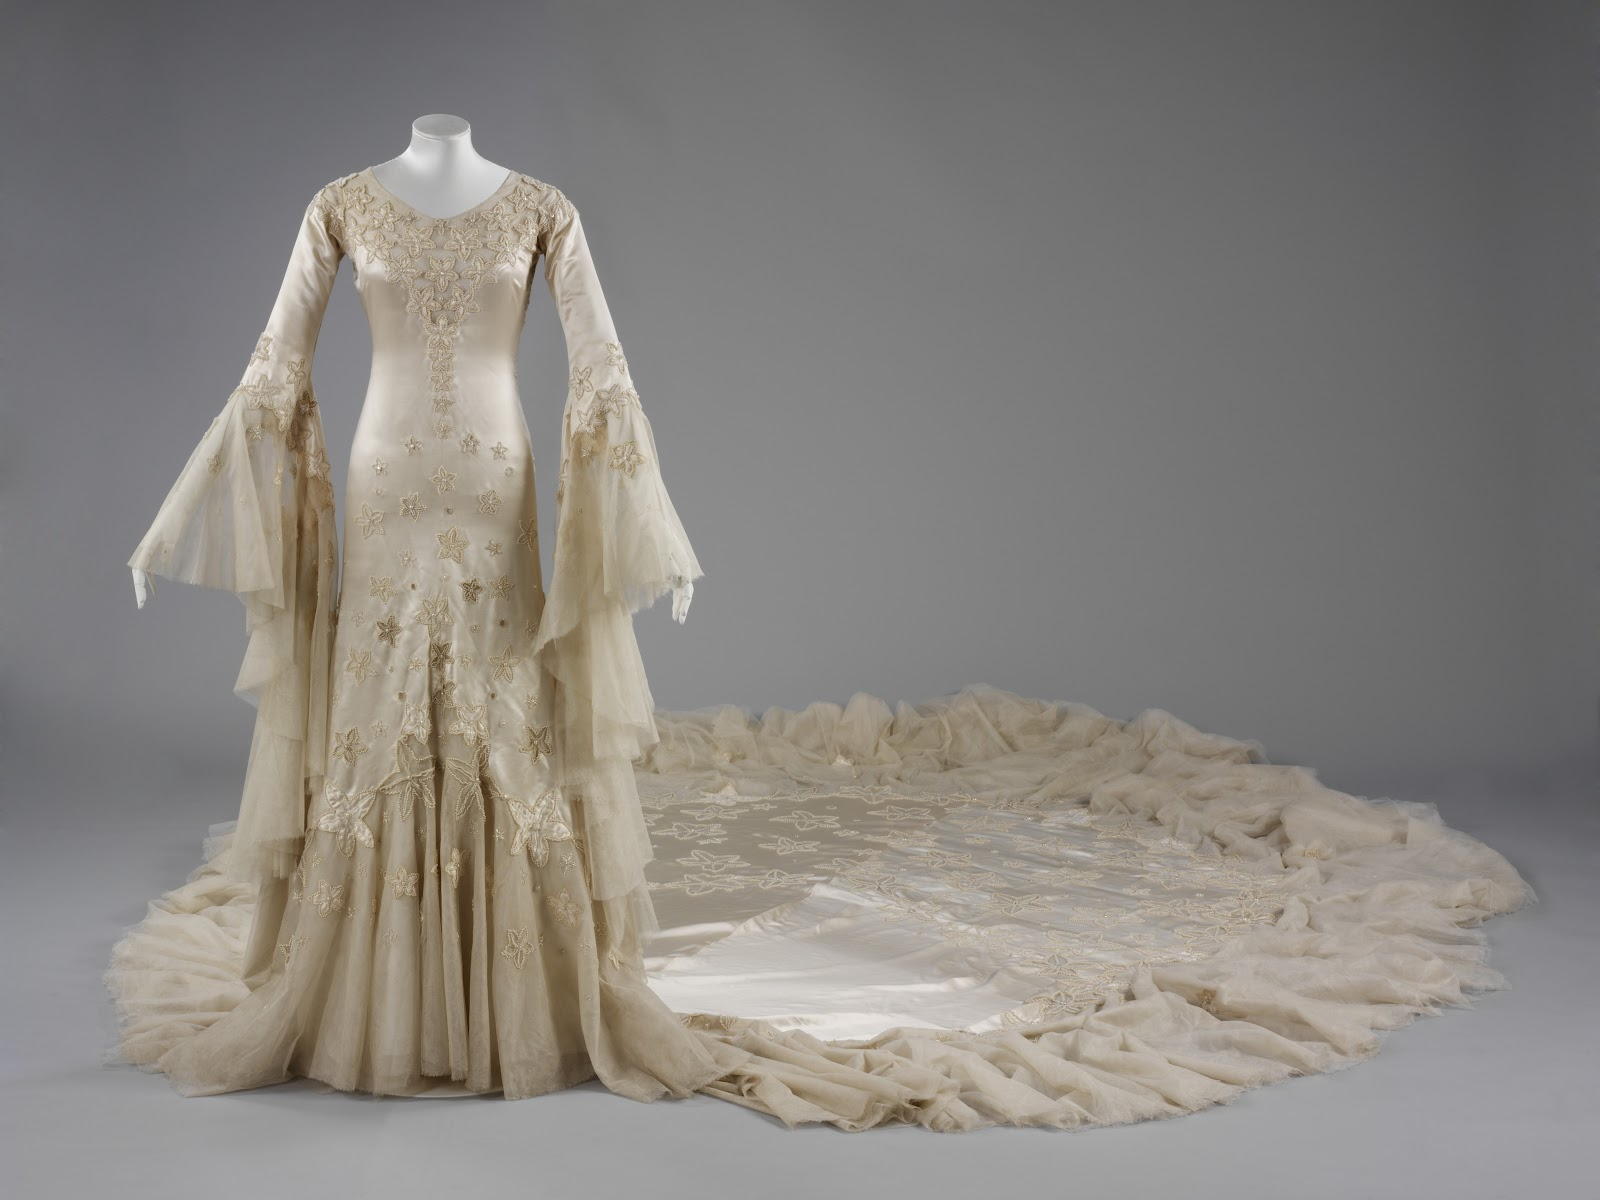 Bewicked art the story behind wedding dresses for Wedding dresses norman ok